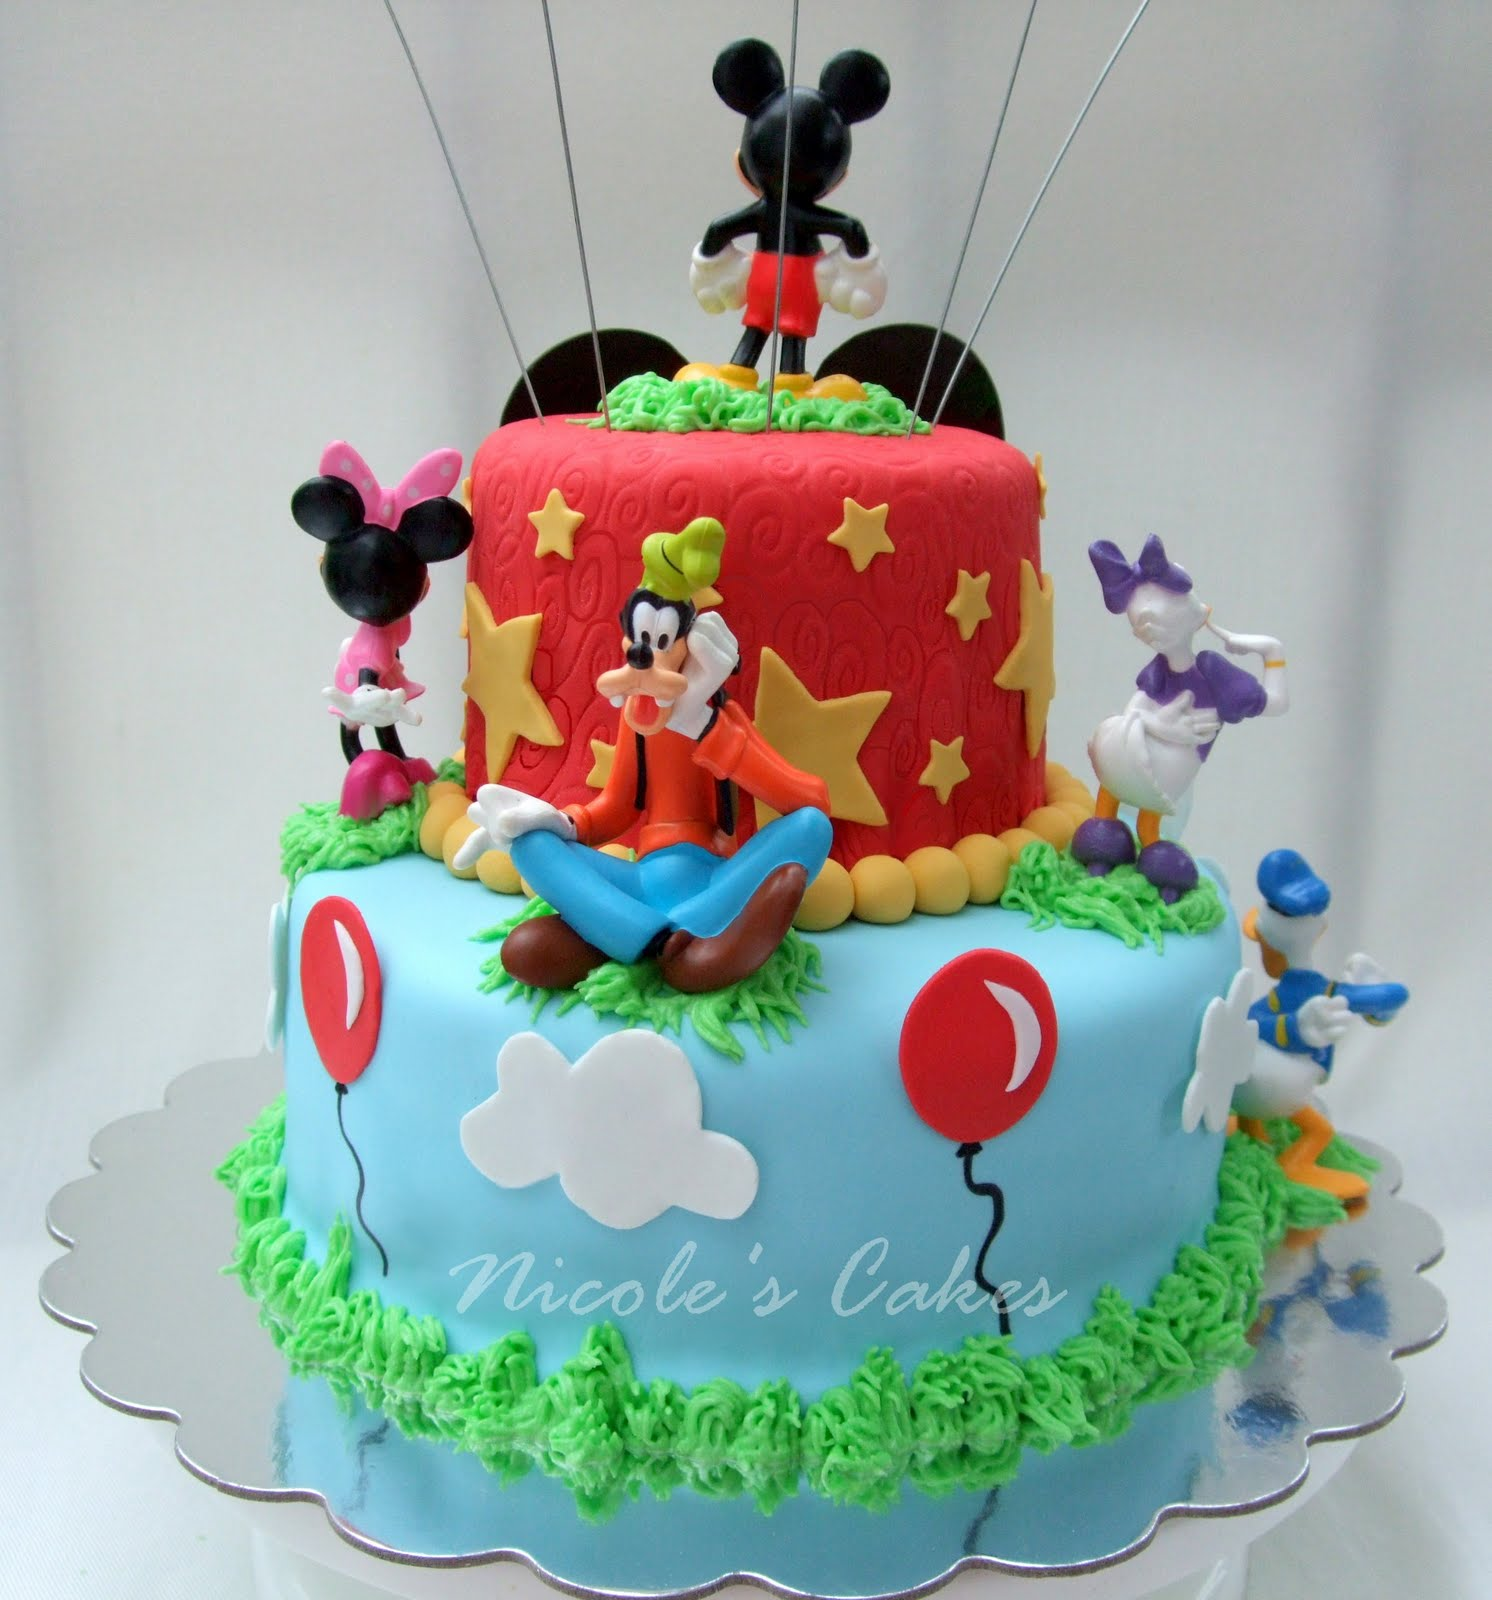 Birthday Cake Pictures Of Mickey Mouse : Confections, Cakes & Creations!: Mickey Mouse Clubhouse ...